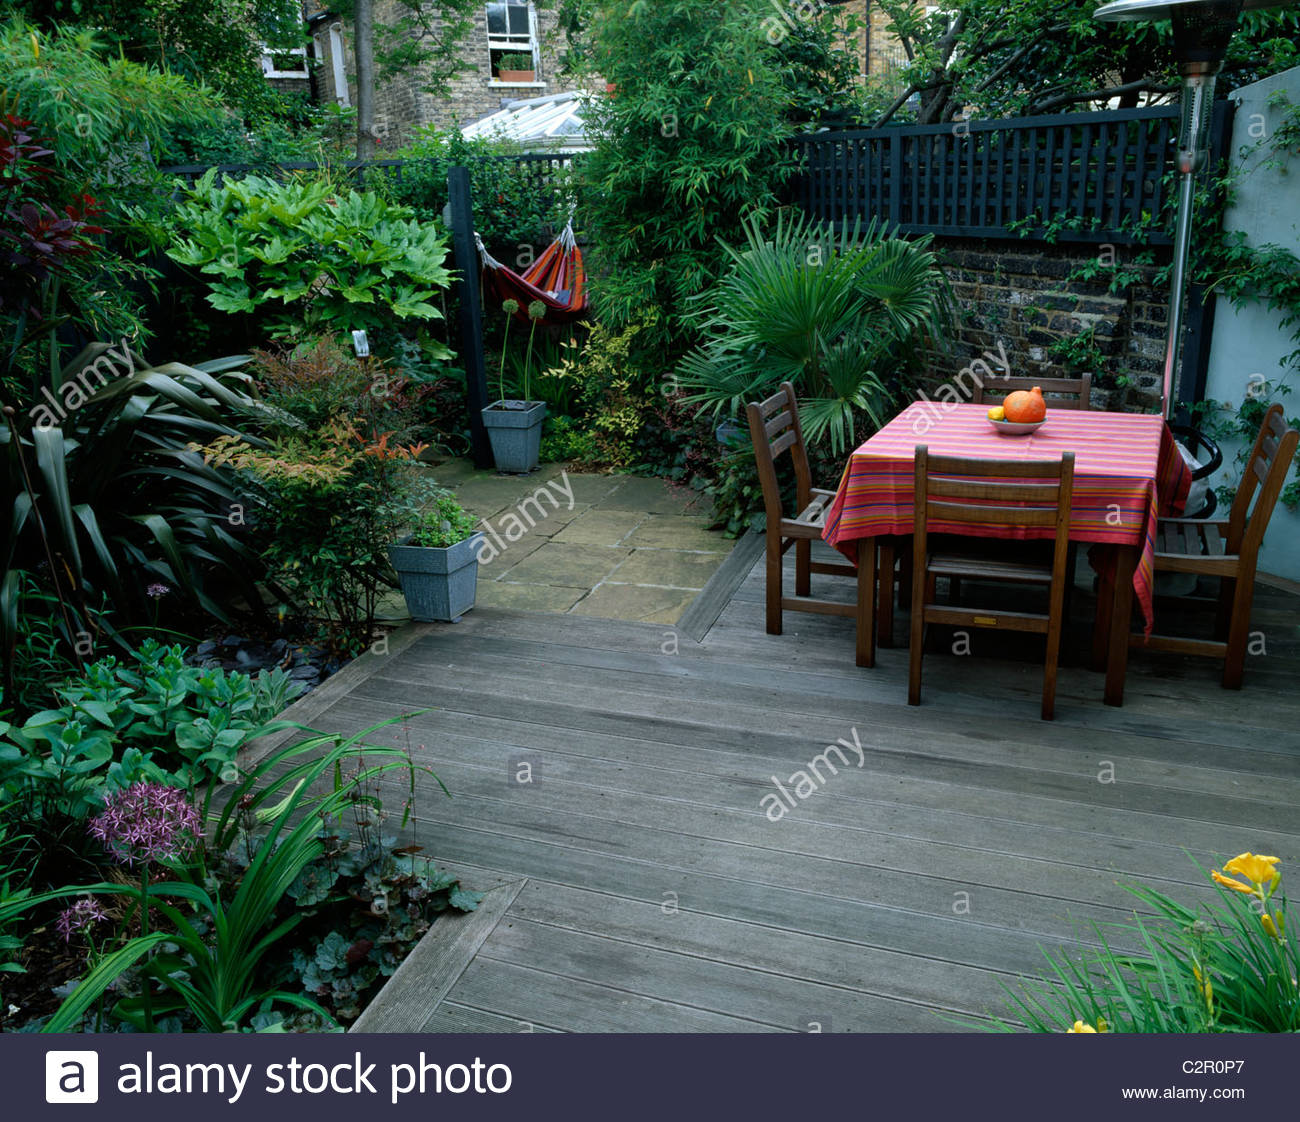 Small Town Garden With Decking, Paving, Table And Chairs, Trachycarpus  Fortunei And Hammock